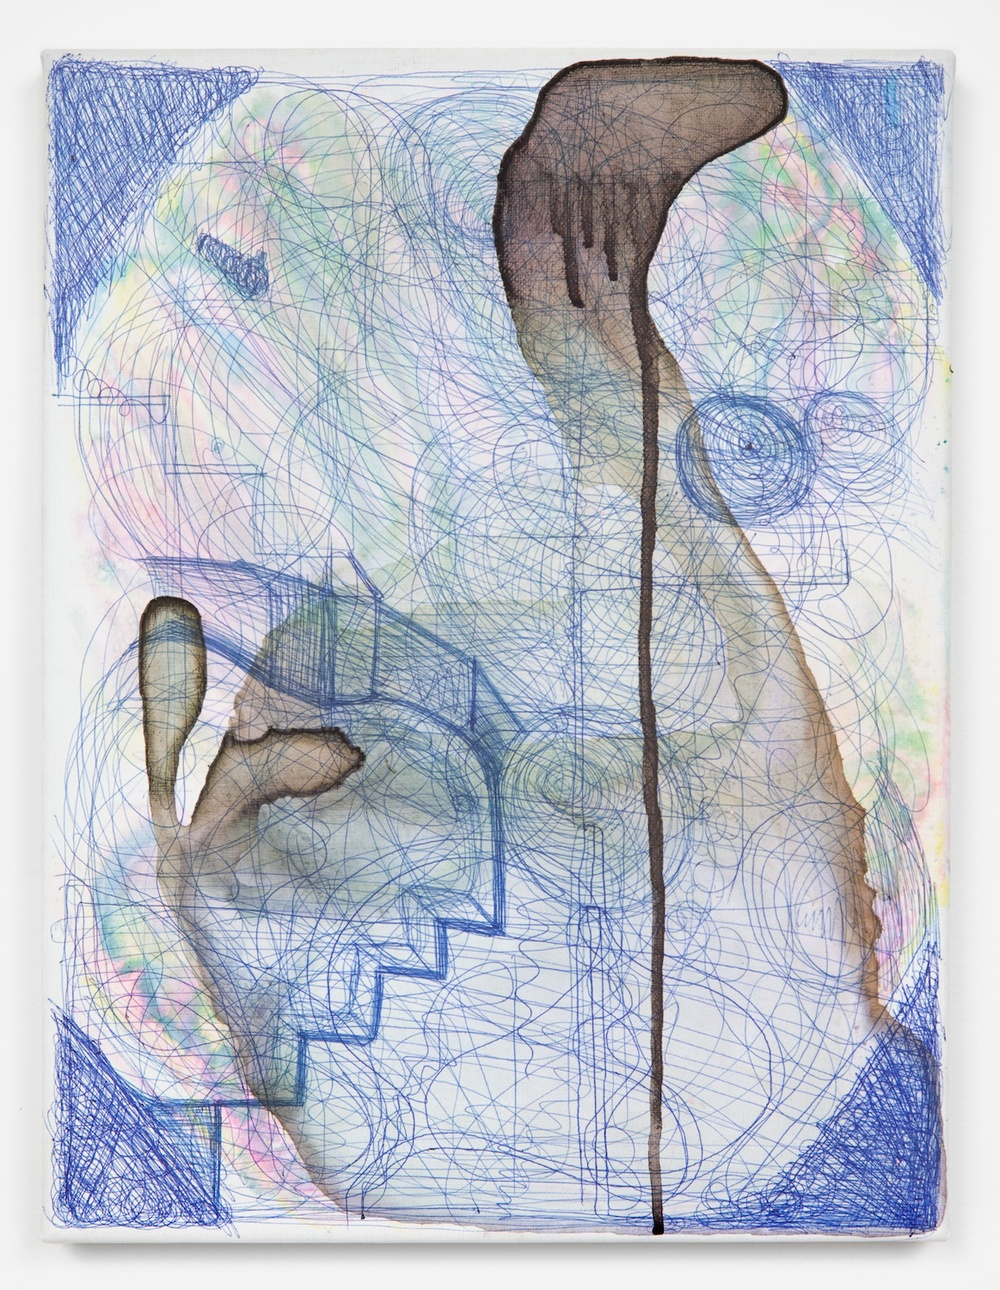 Joanne Greenbaum  Untitled  2011 Oil, acrylic and mixed media on linen 16h x 12w in JG020